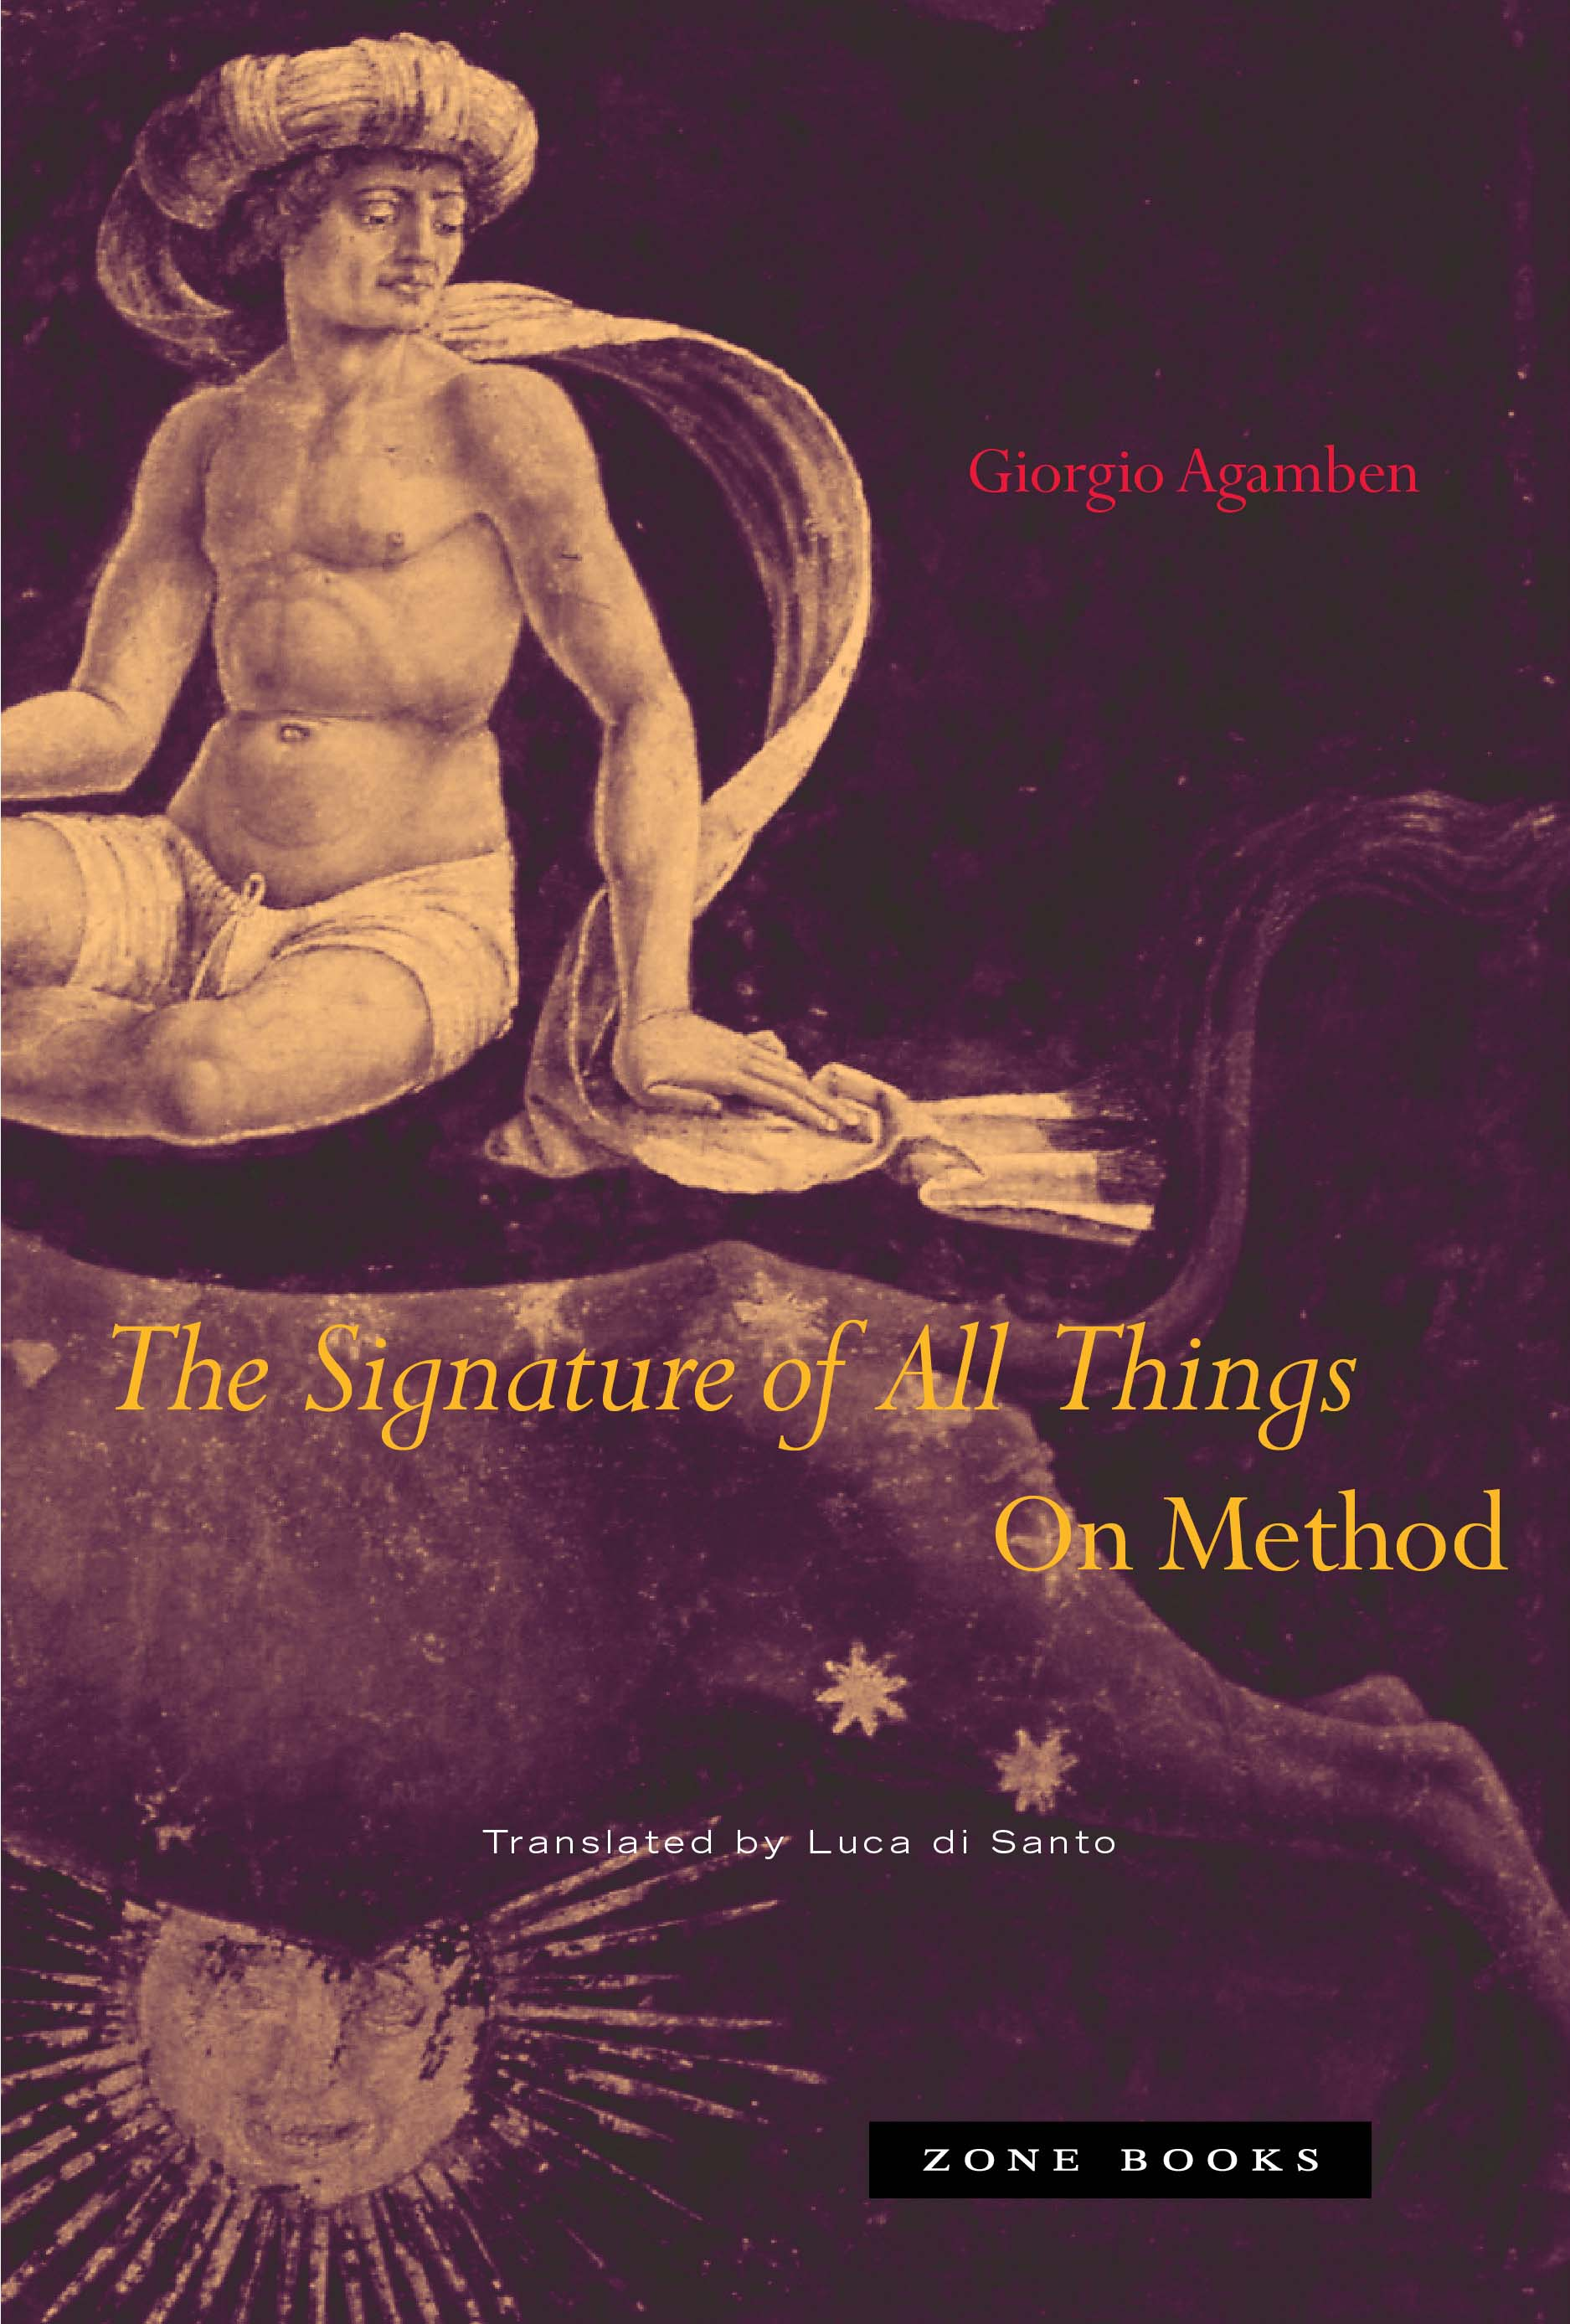 Does anyone know anything about Giorgio Agamben?